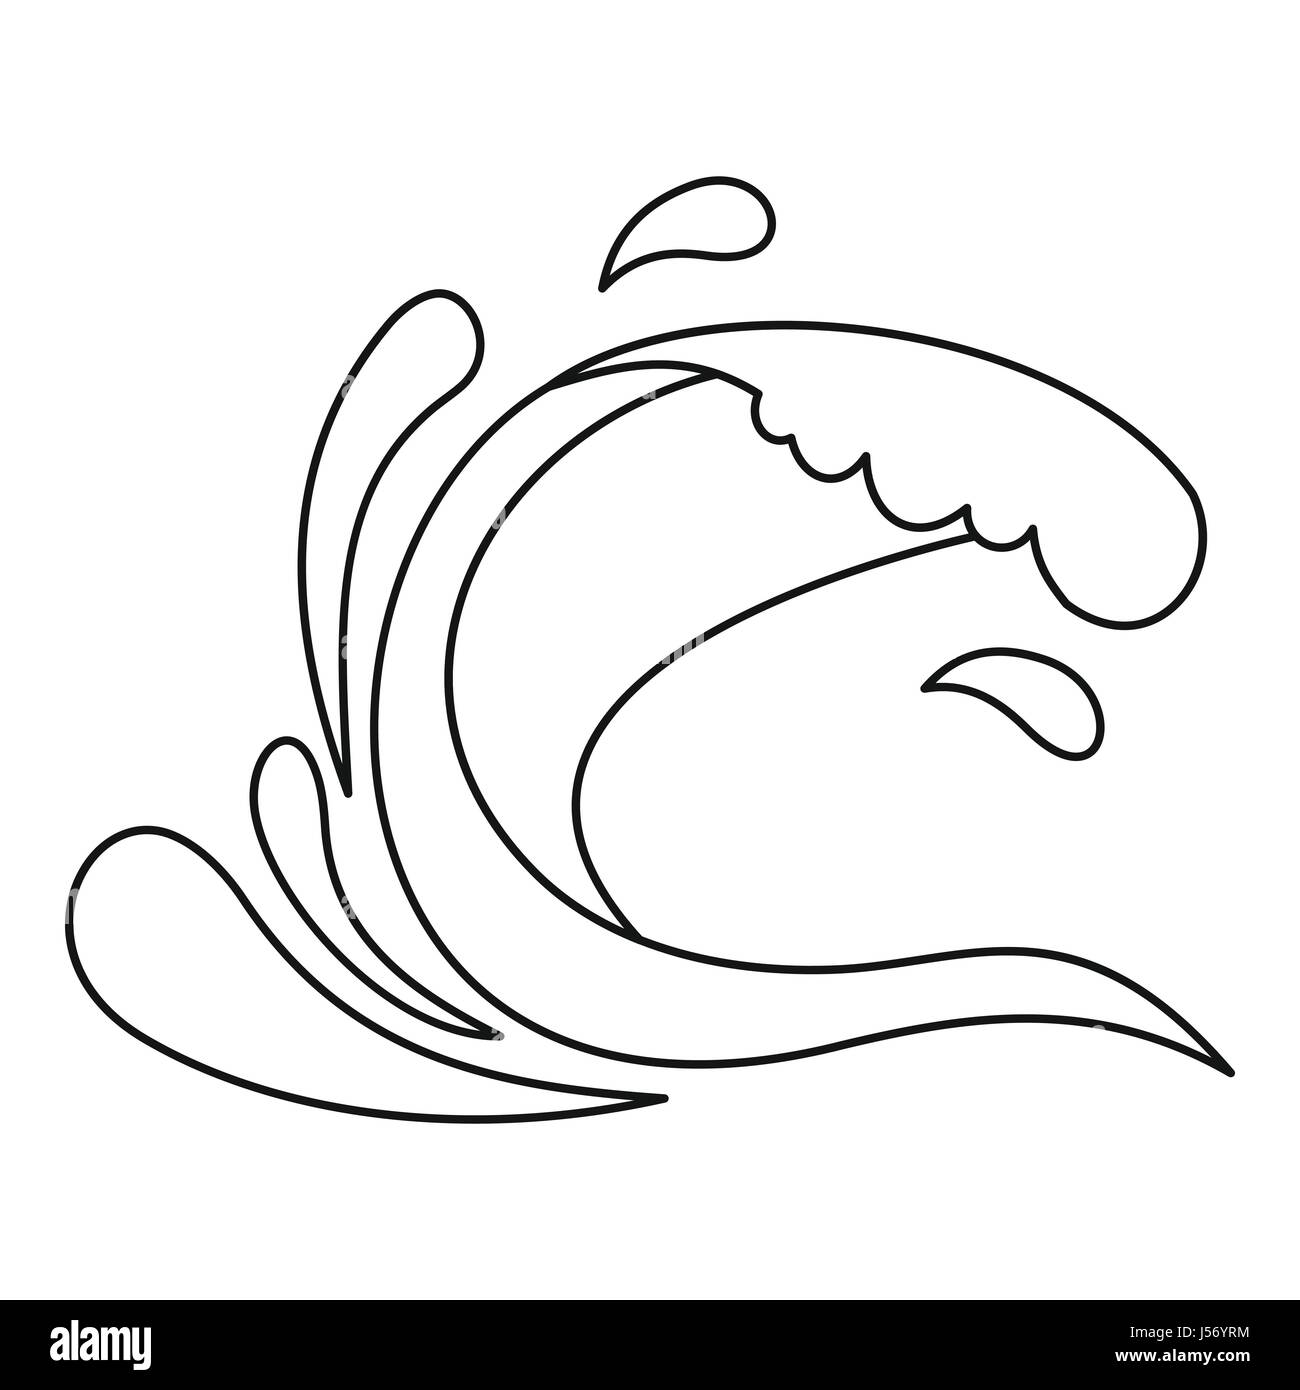 waves and splashes coloring pages - photo#24